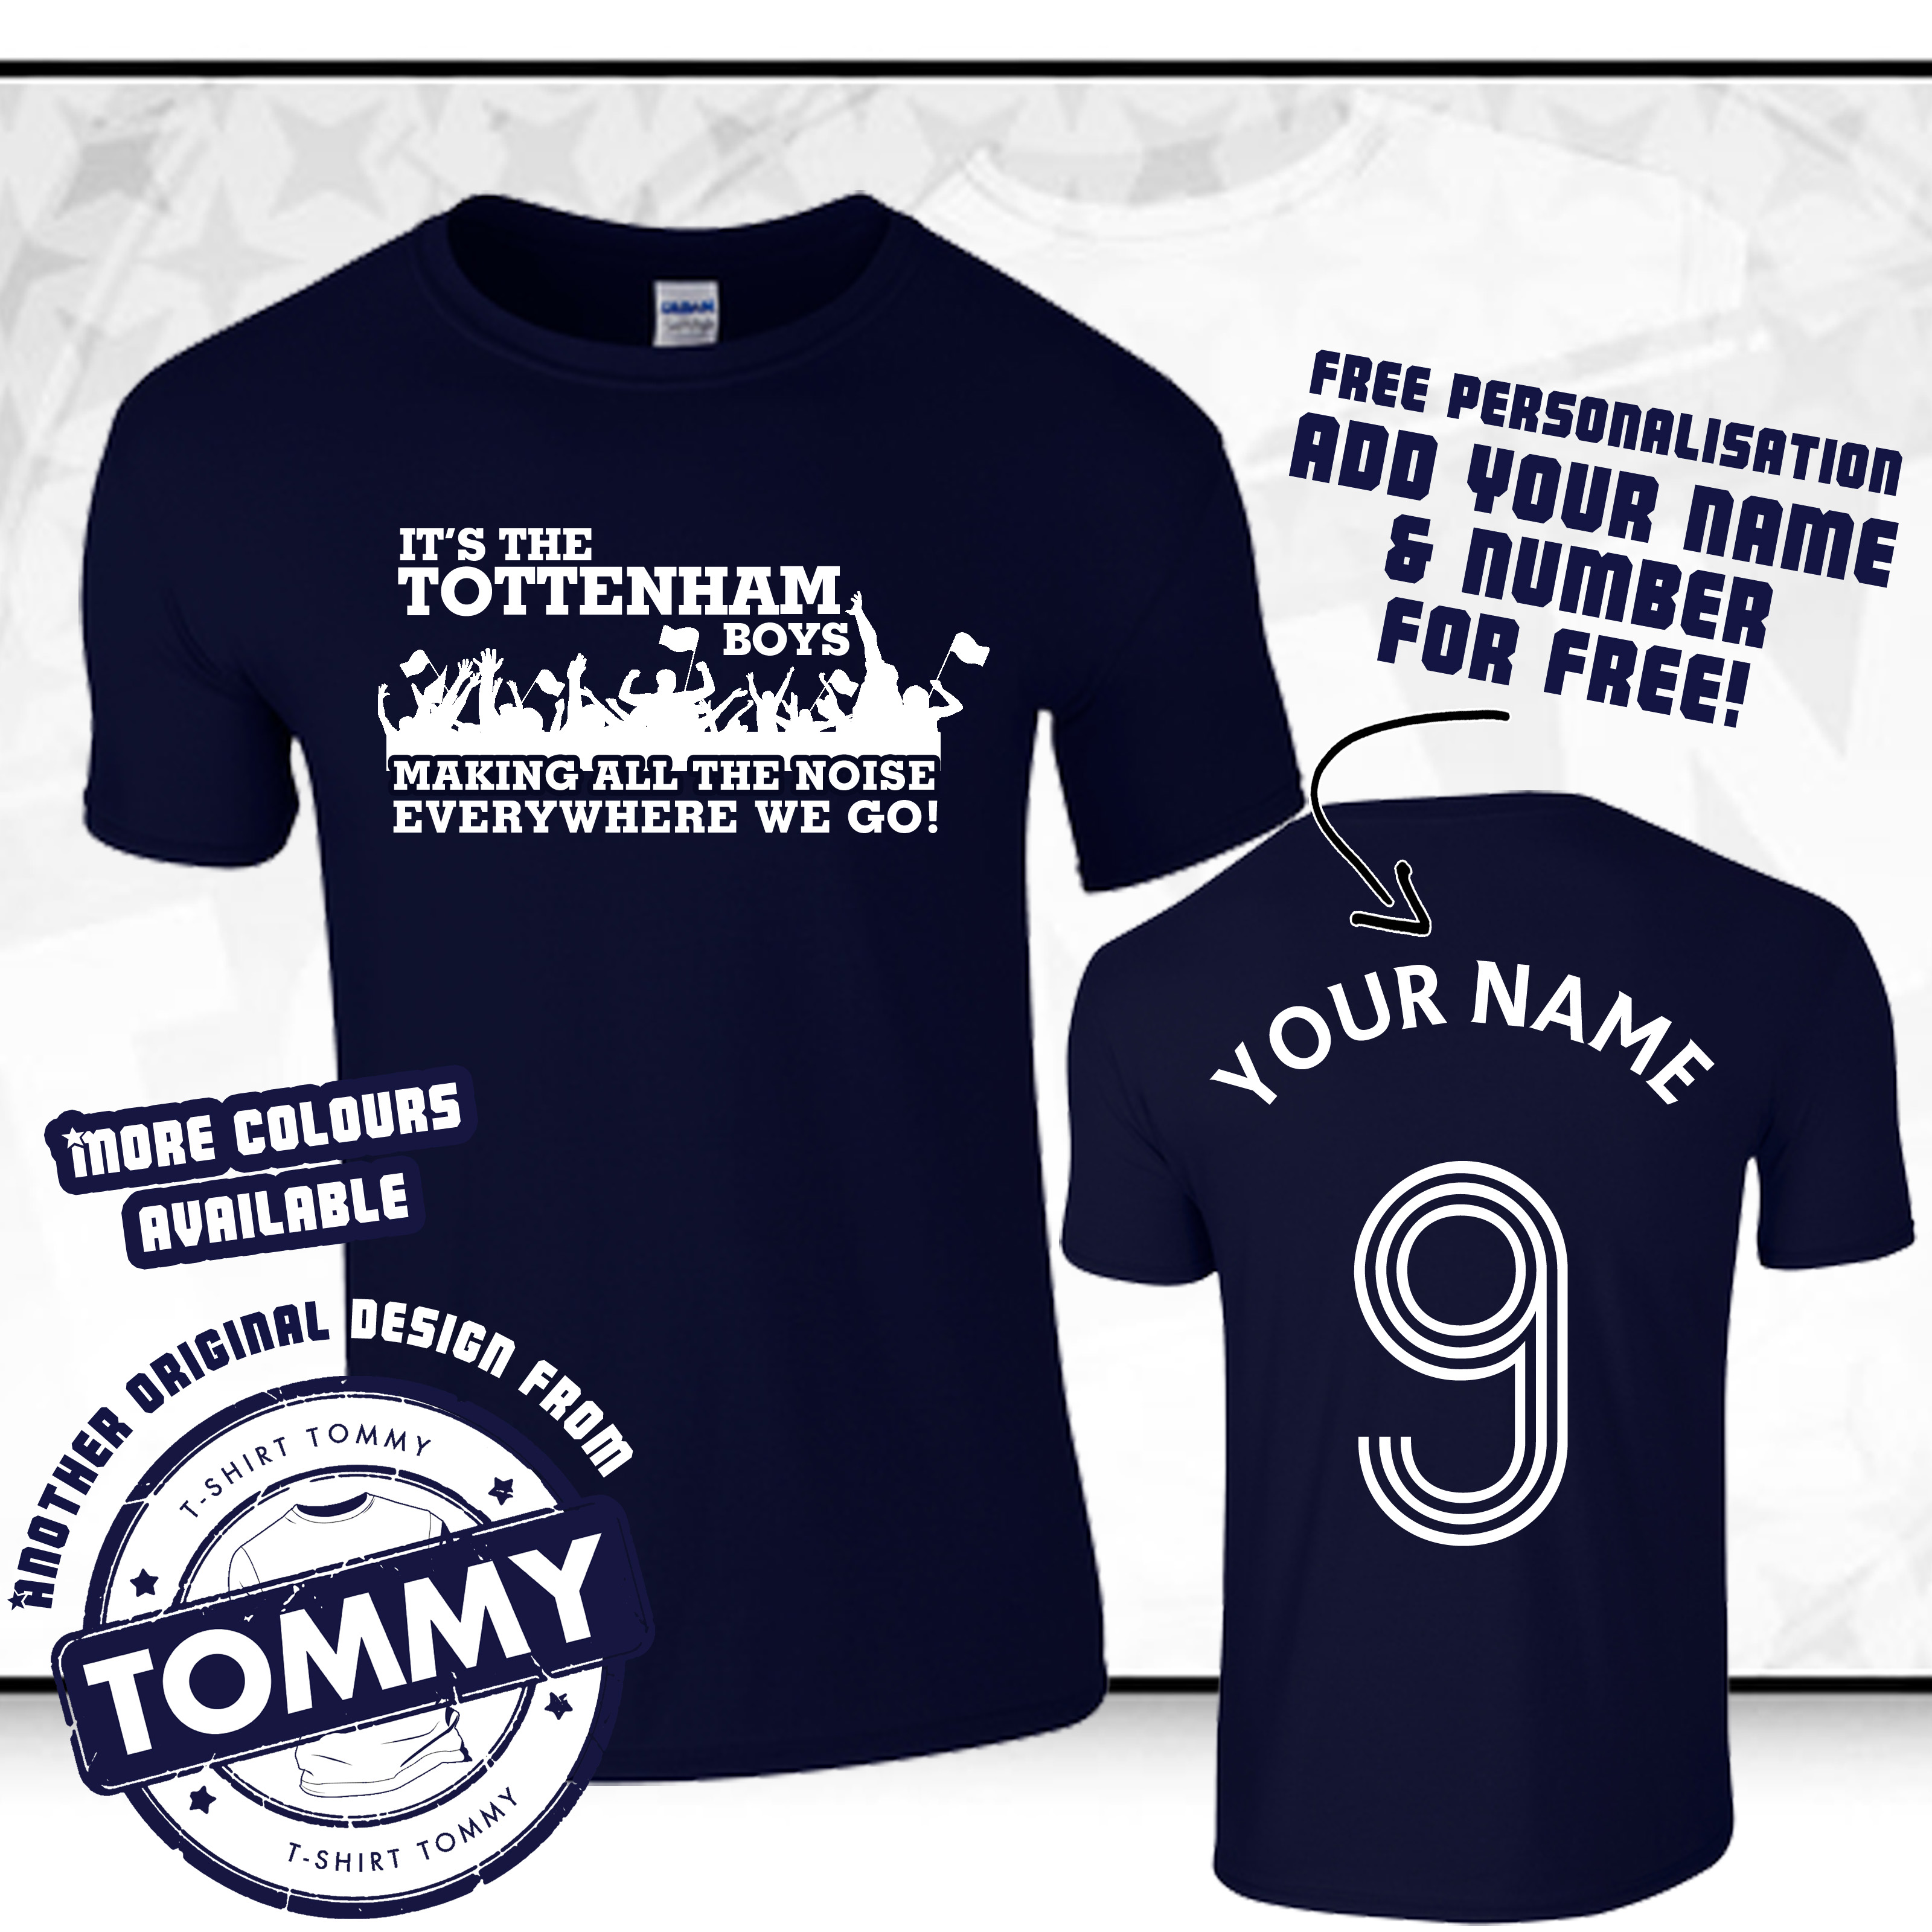 hot sale online bfc48 9f055 Details about Spurs T-Shirt It's The Tottenham Boys! Everywhere We Go COYS  Spurs Tee